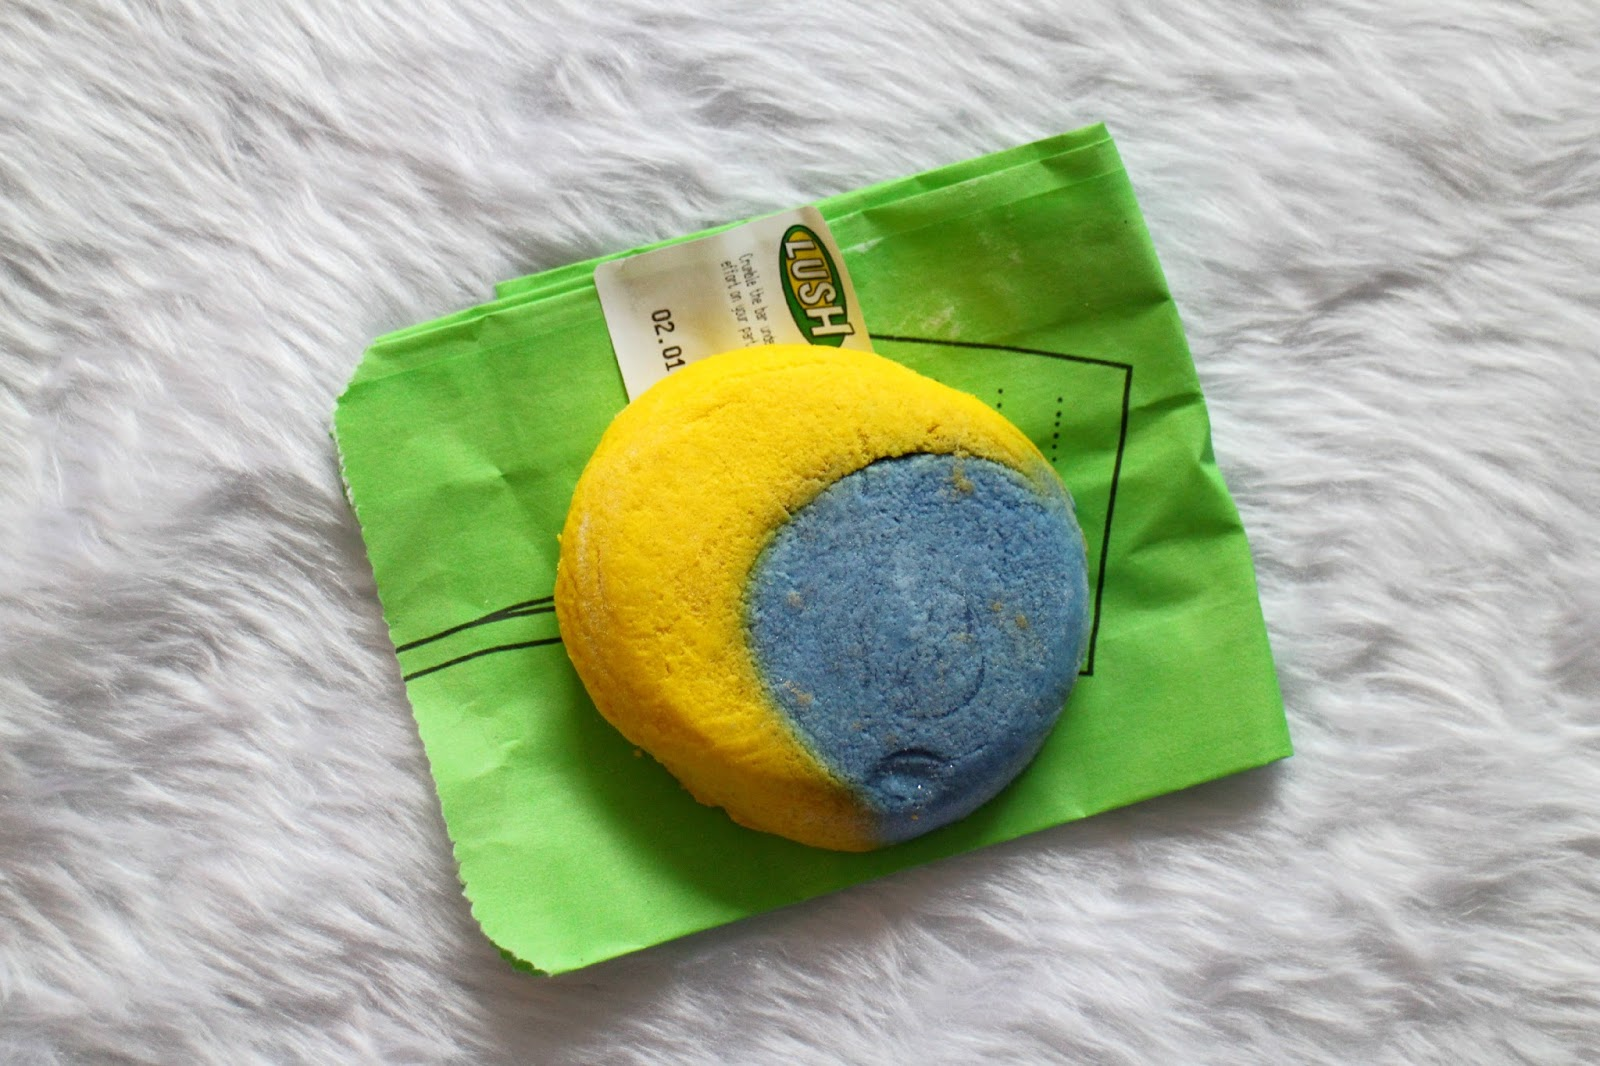 Lush Christmas Eve Bubble Bar Review